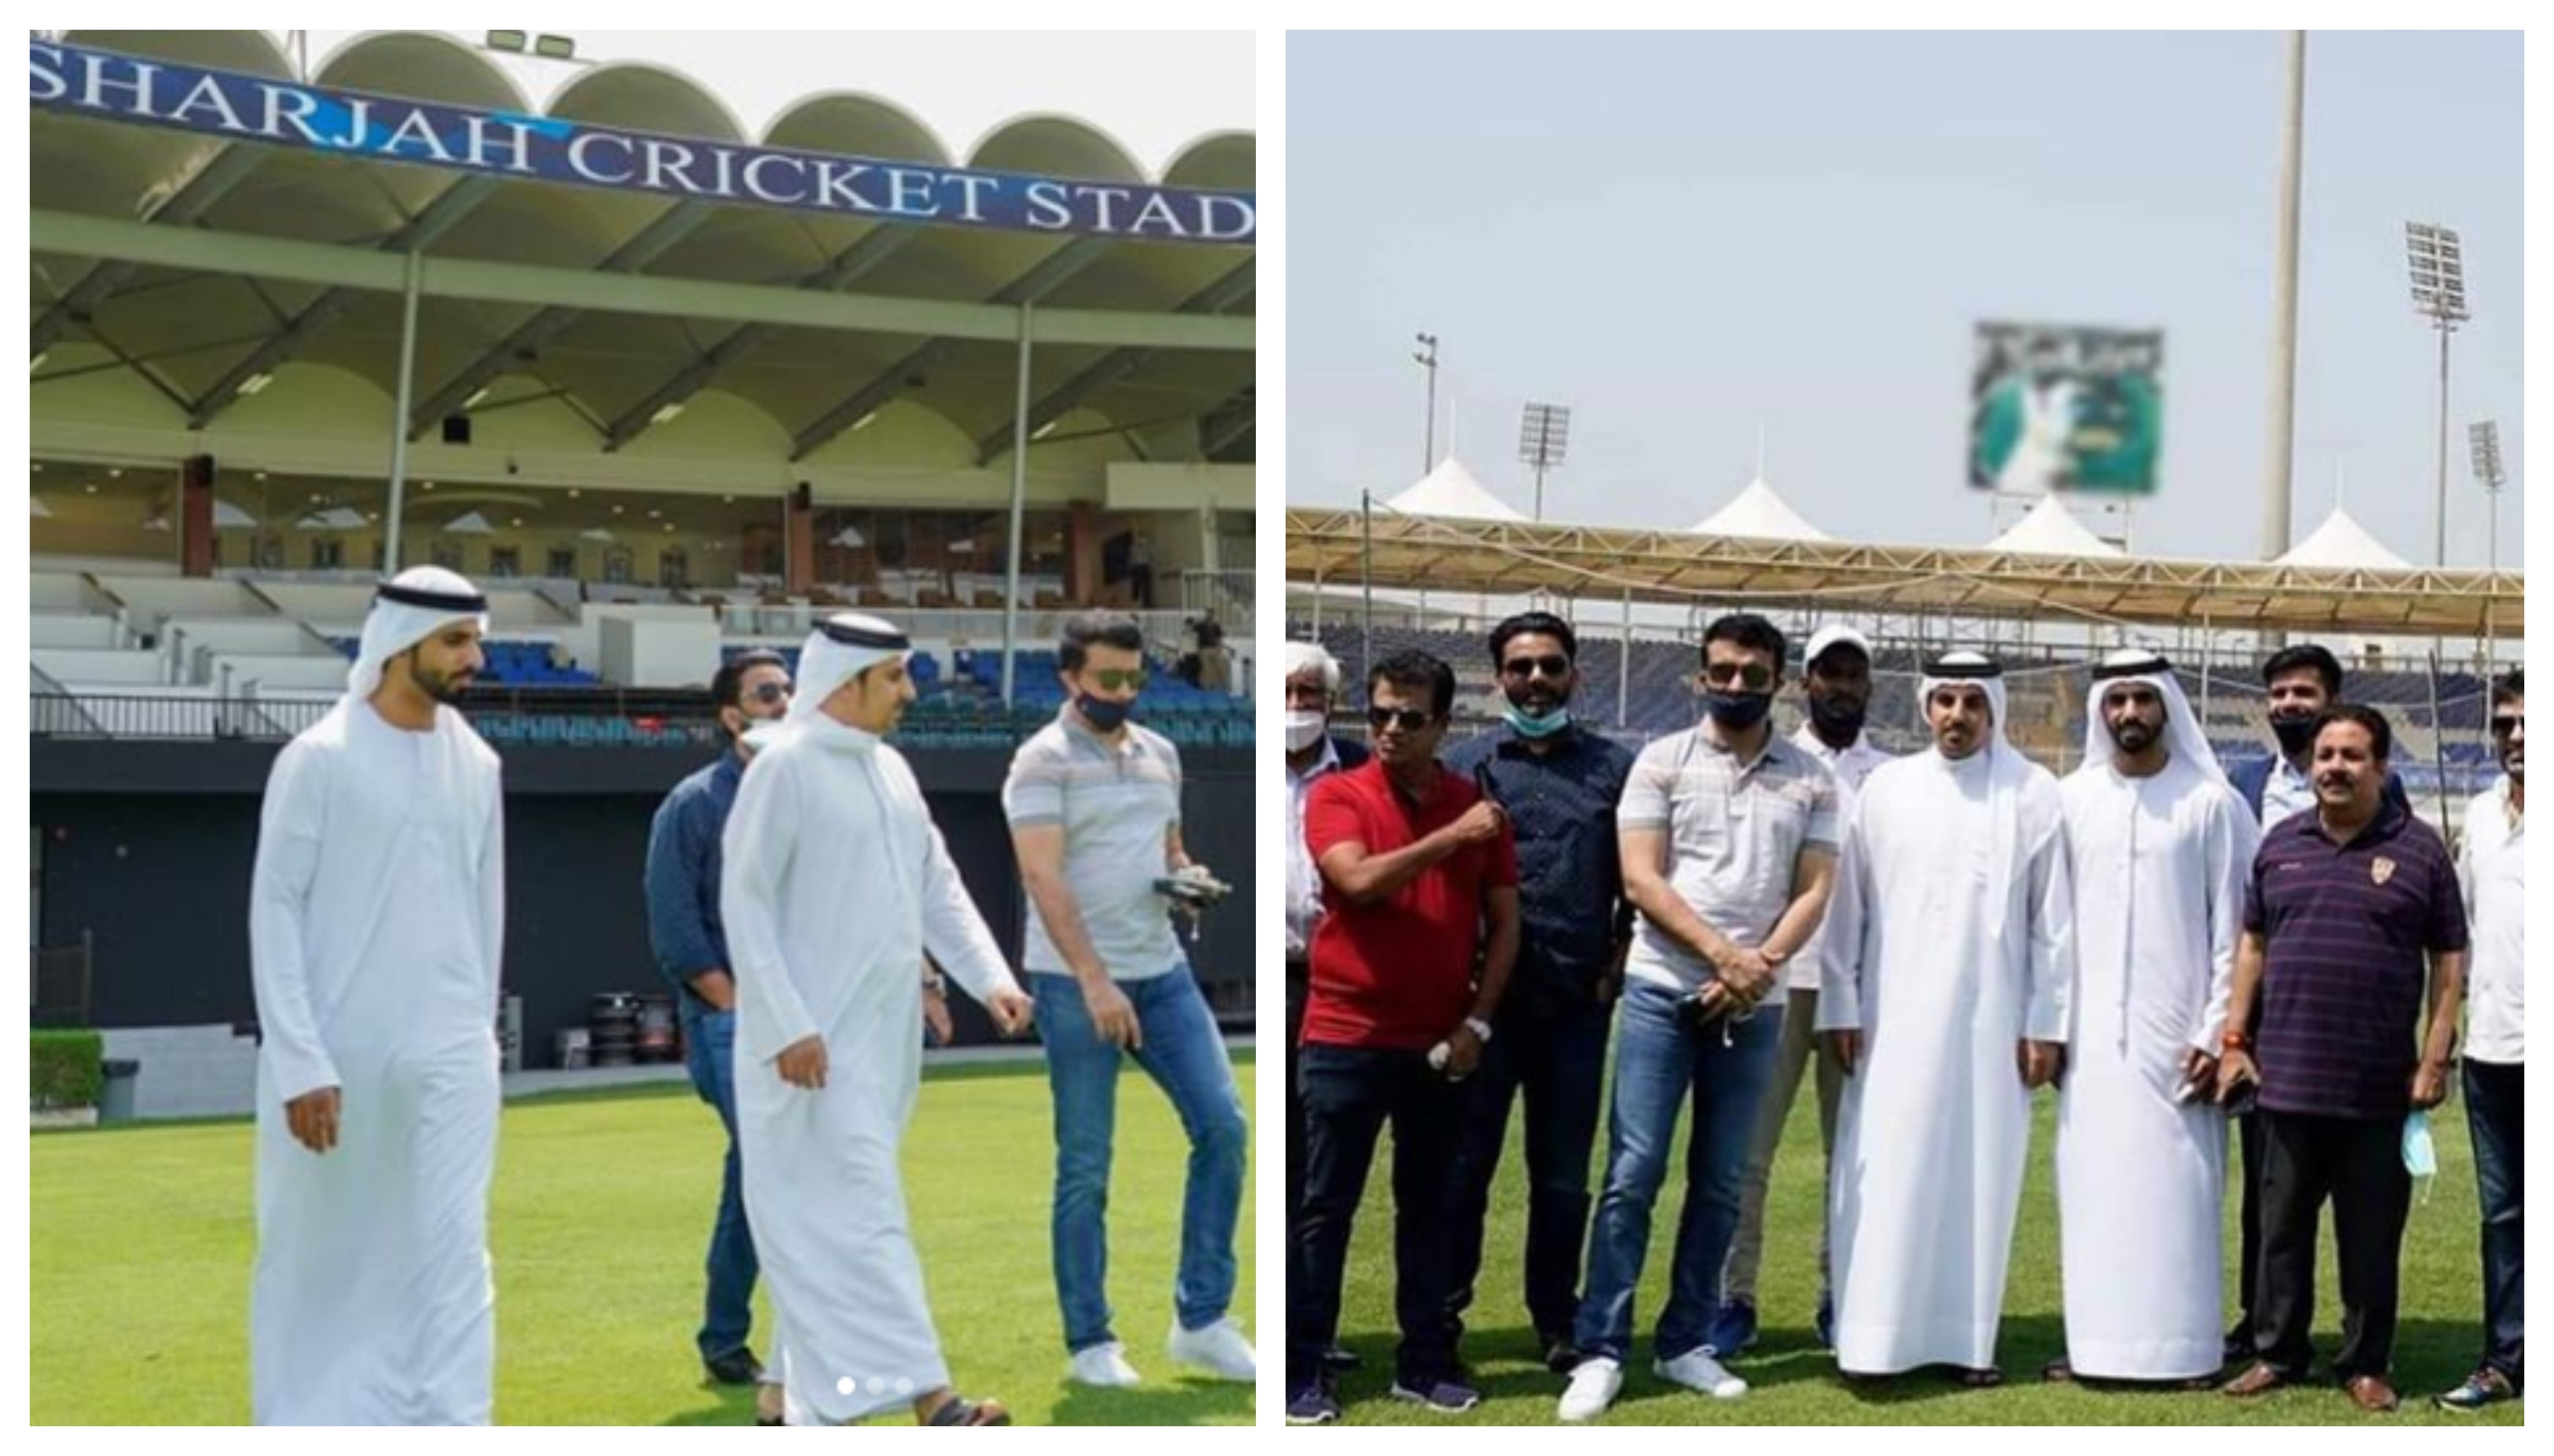 Sourav Ganguly paid a visit to the Sharjah Cricket Stadium | Instagram